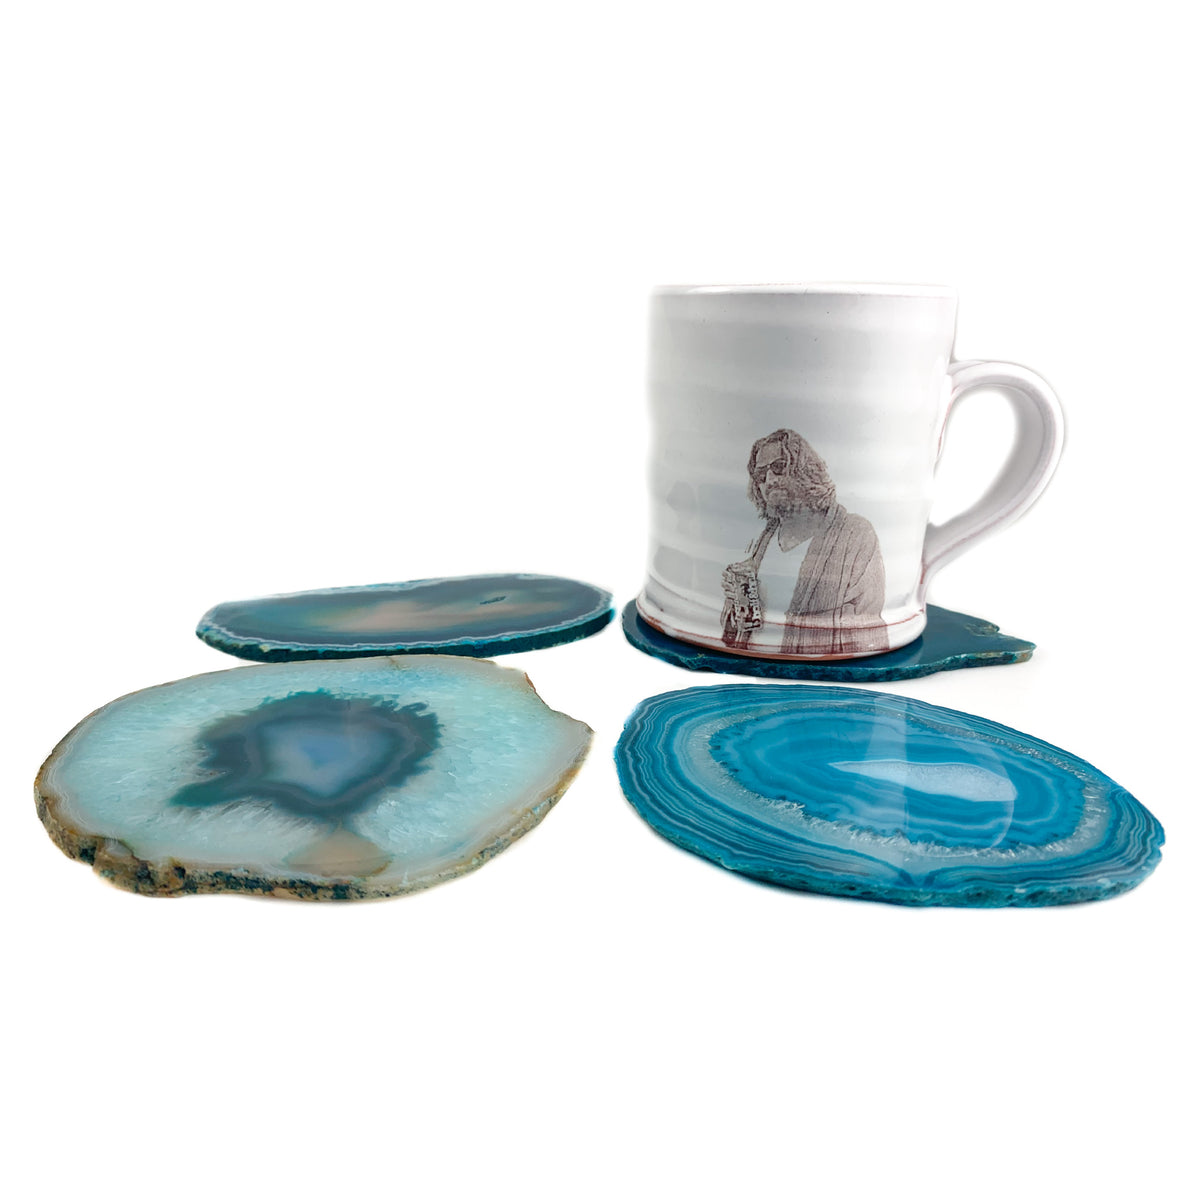 Teal Banded Agate Geode Coasters Set of 4 from Brazil